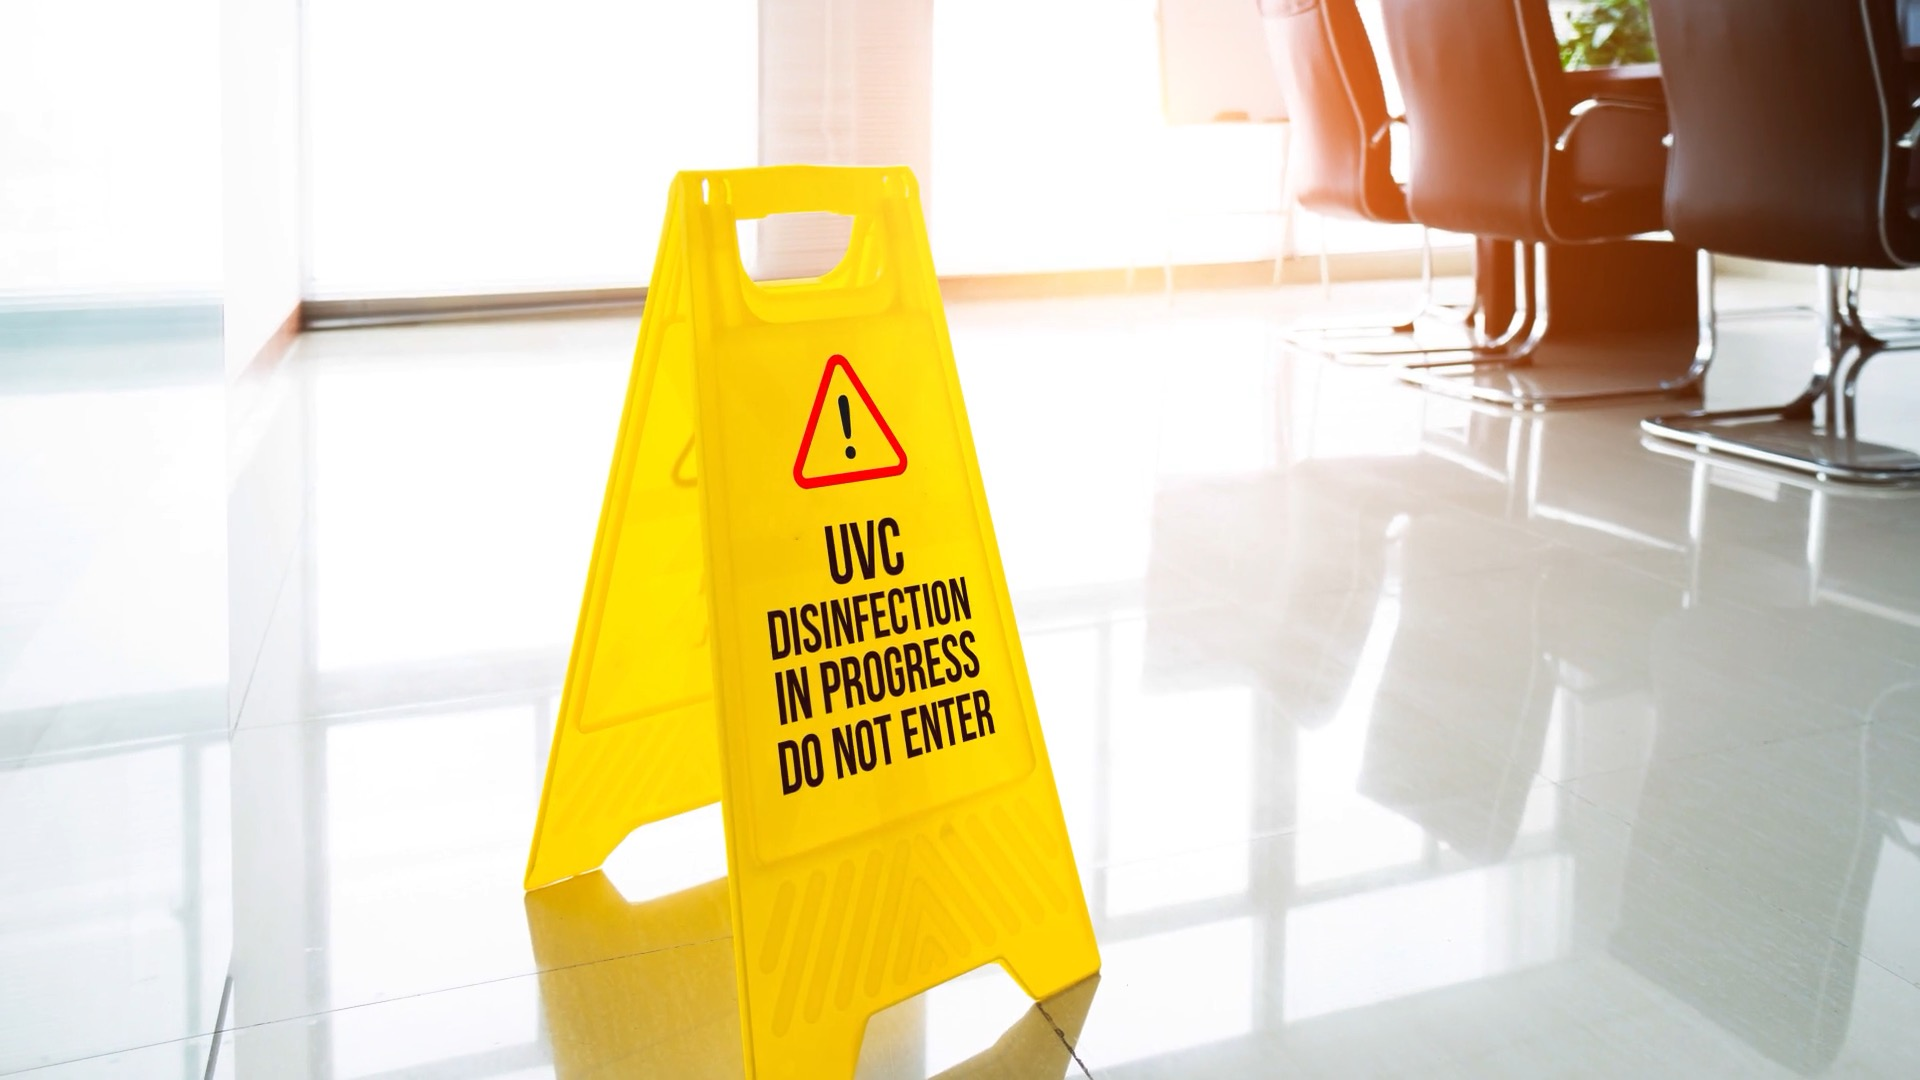 UV-C lamps can be highly effective in disinfecting indoor spaces and would lessen the rate of transmission of COVID-19